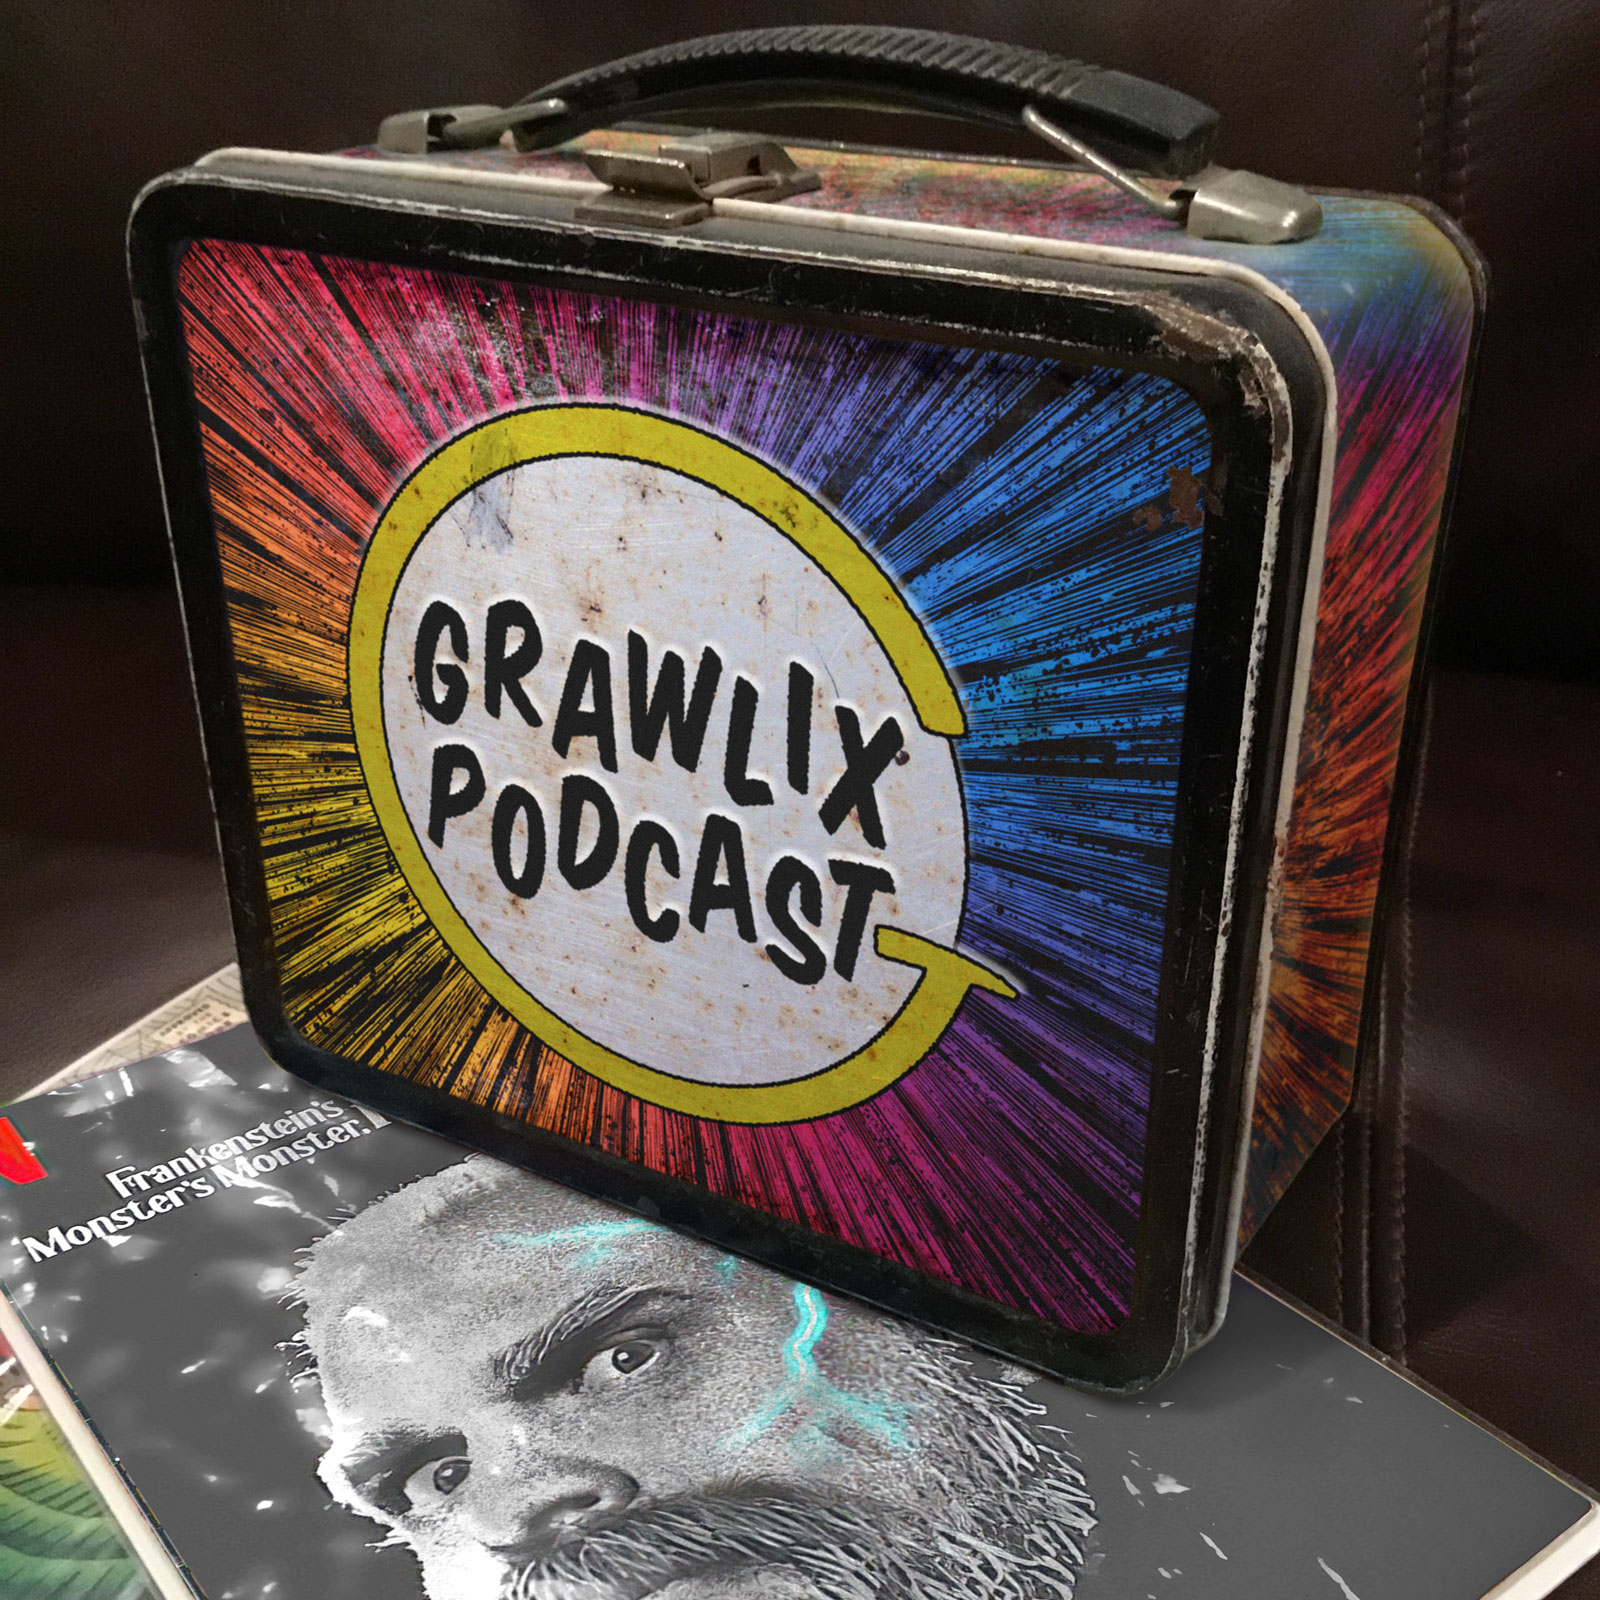 Best of Grawlix Lunch Box Live: Frankenstein's Monster's Monster, Frankenstein